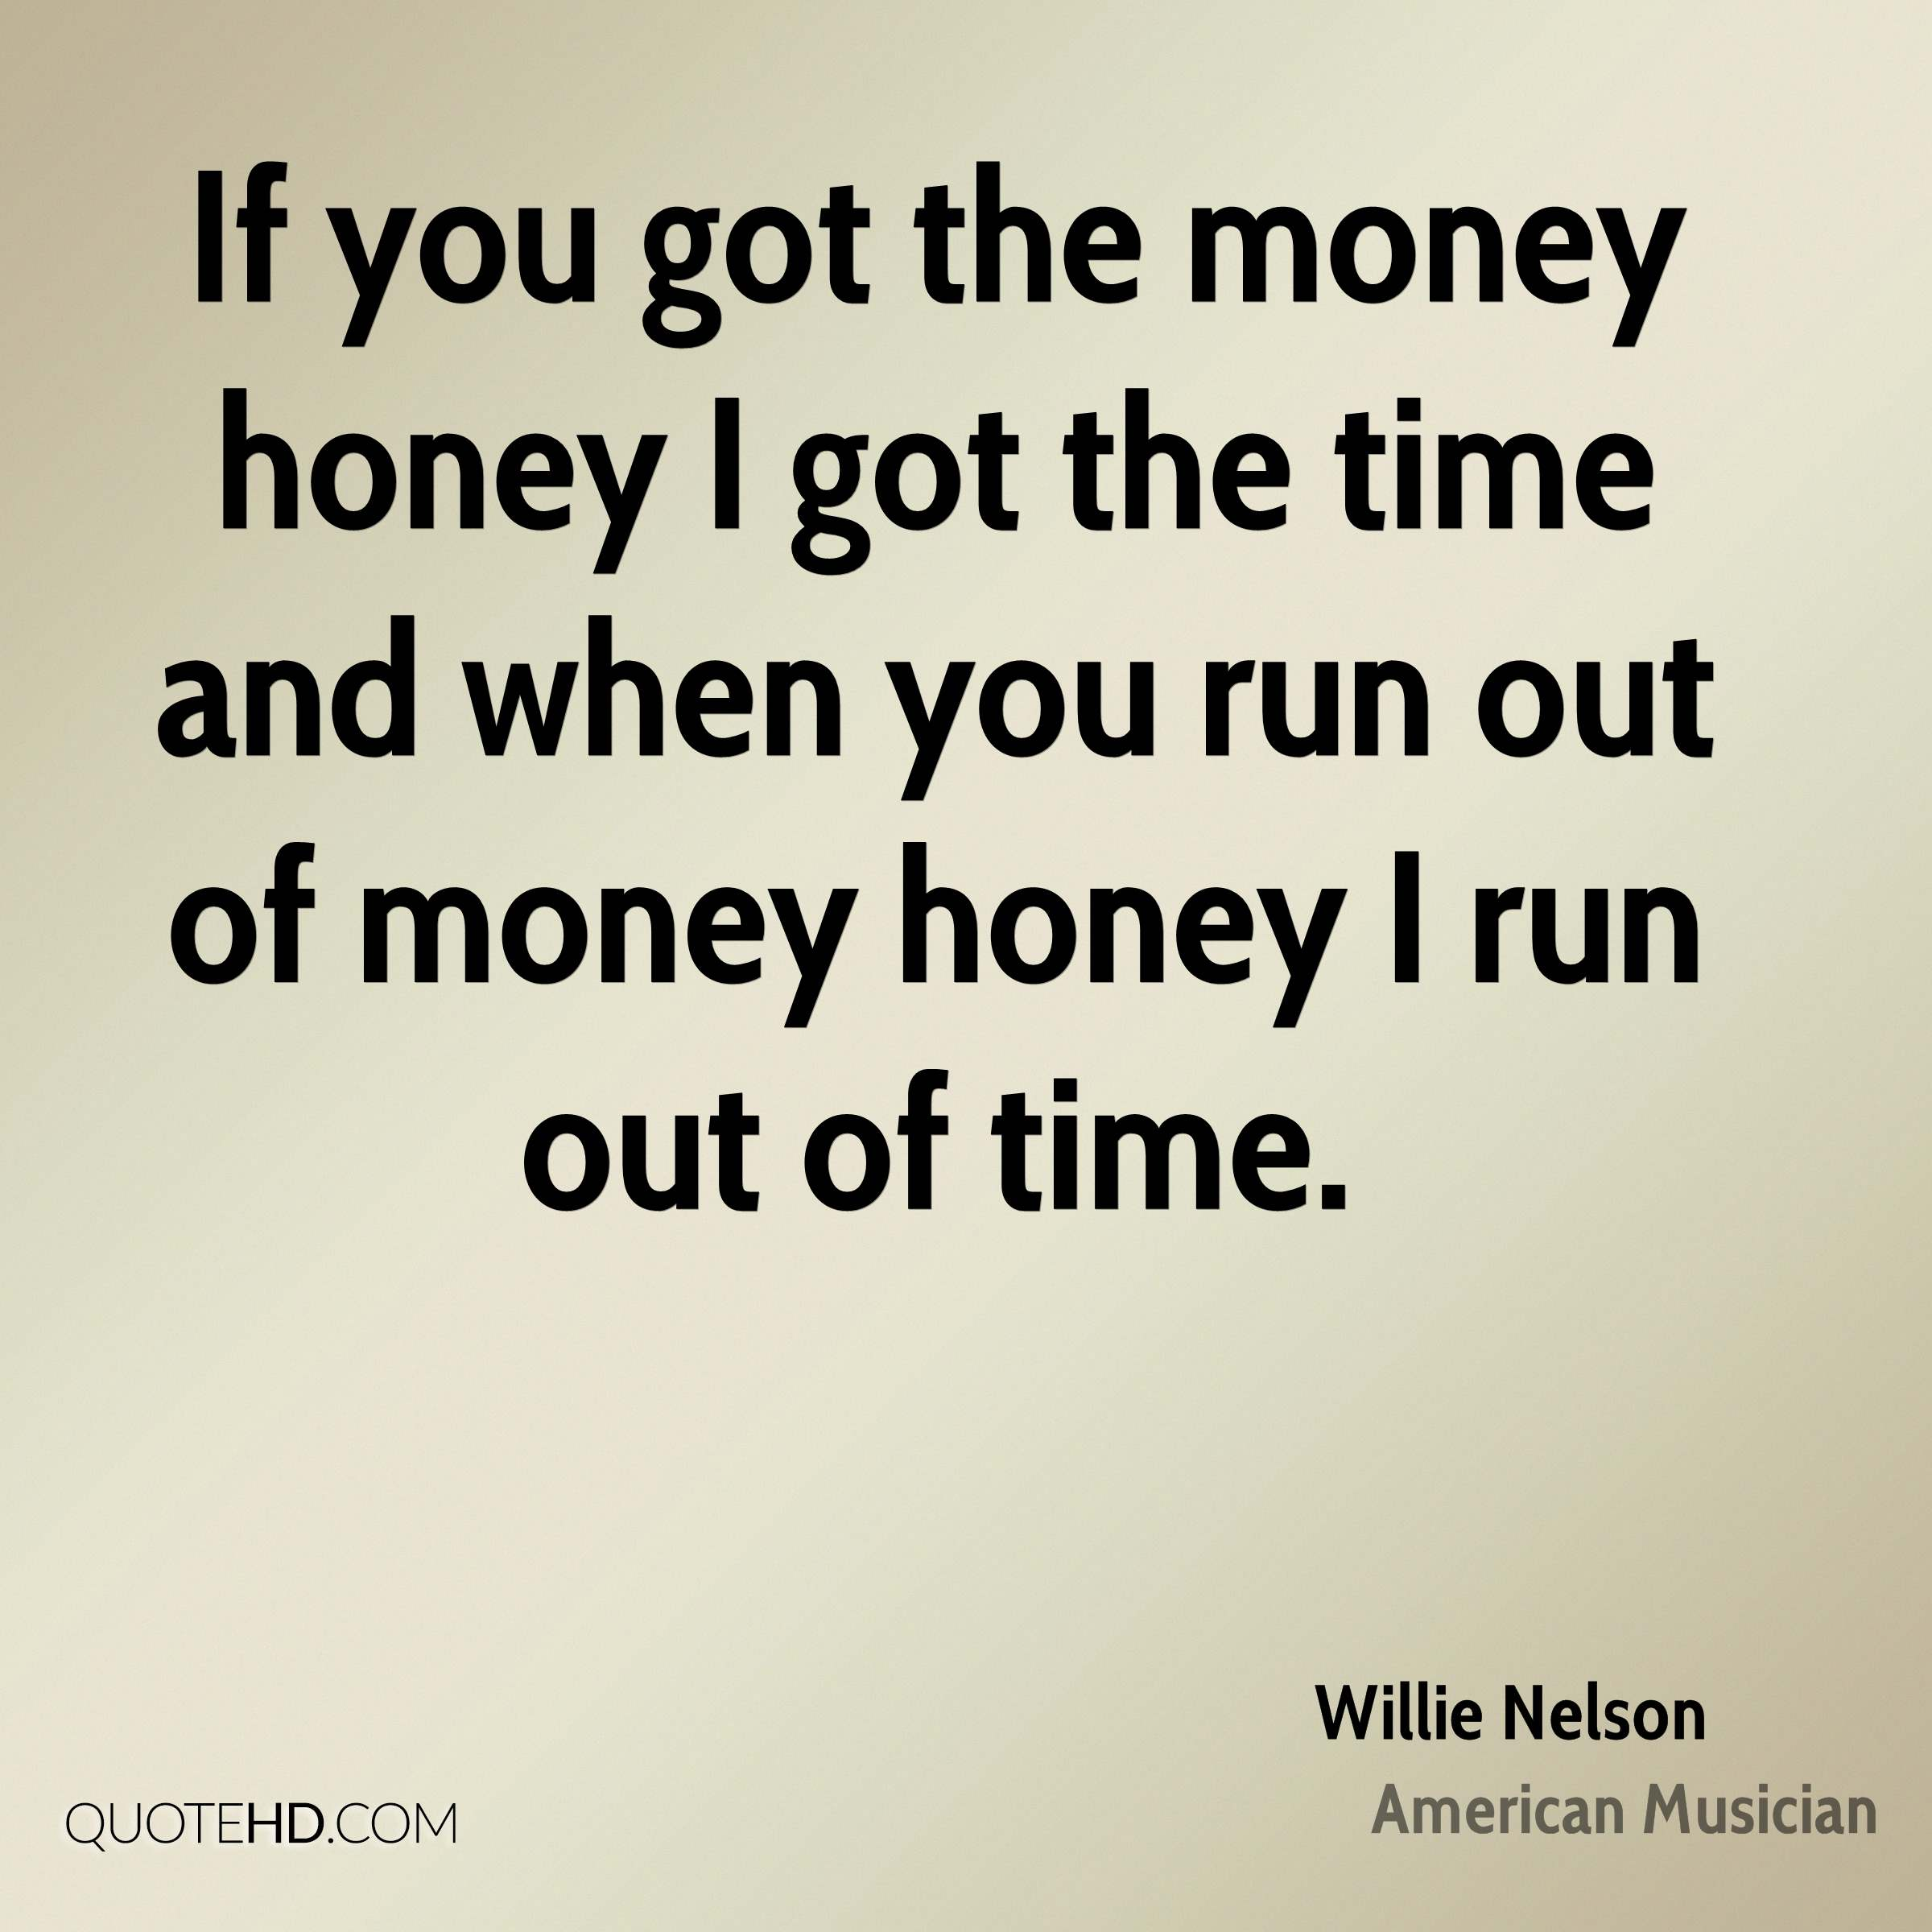 If you got the money honey I got the time and when you run out of money honey I run out of time.